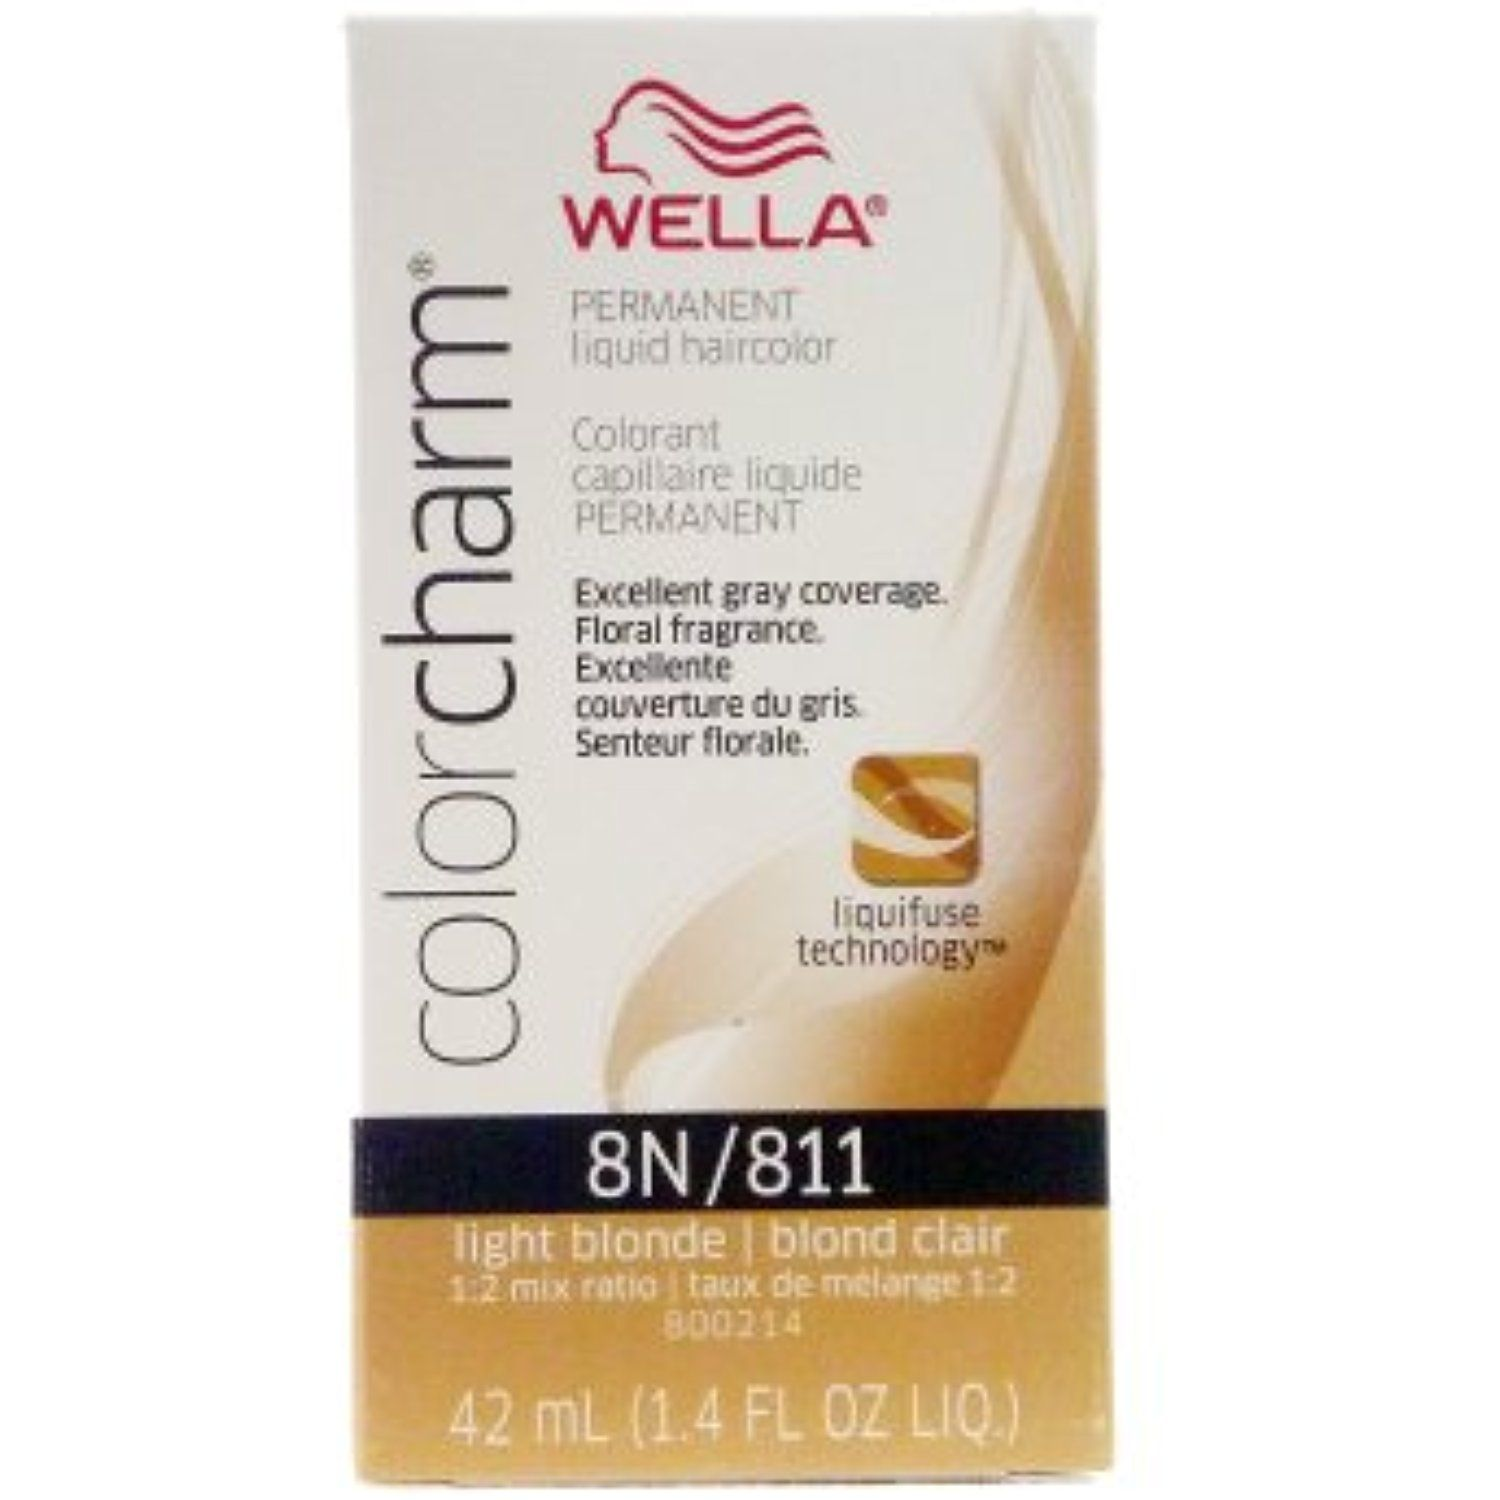 Wella Color Charm 8n811 Light Blonde Permanent Liquid Hair Color